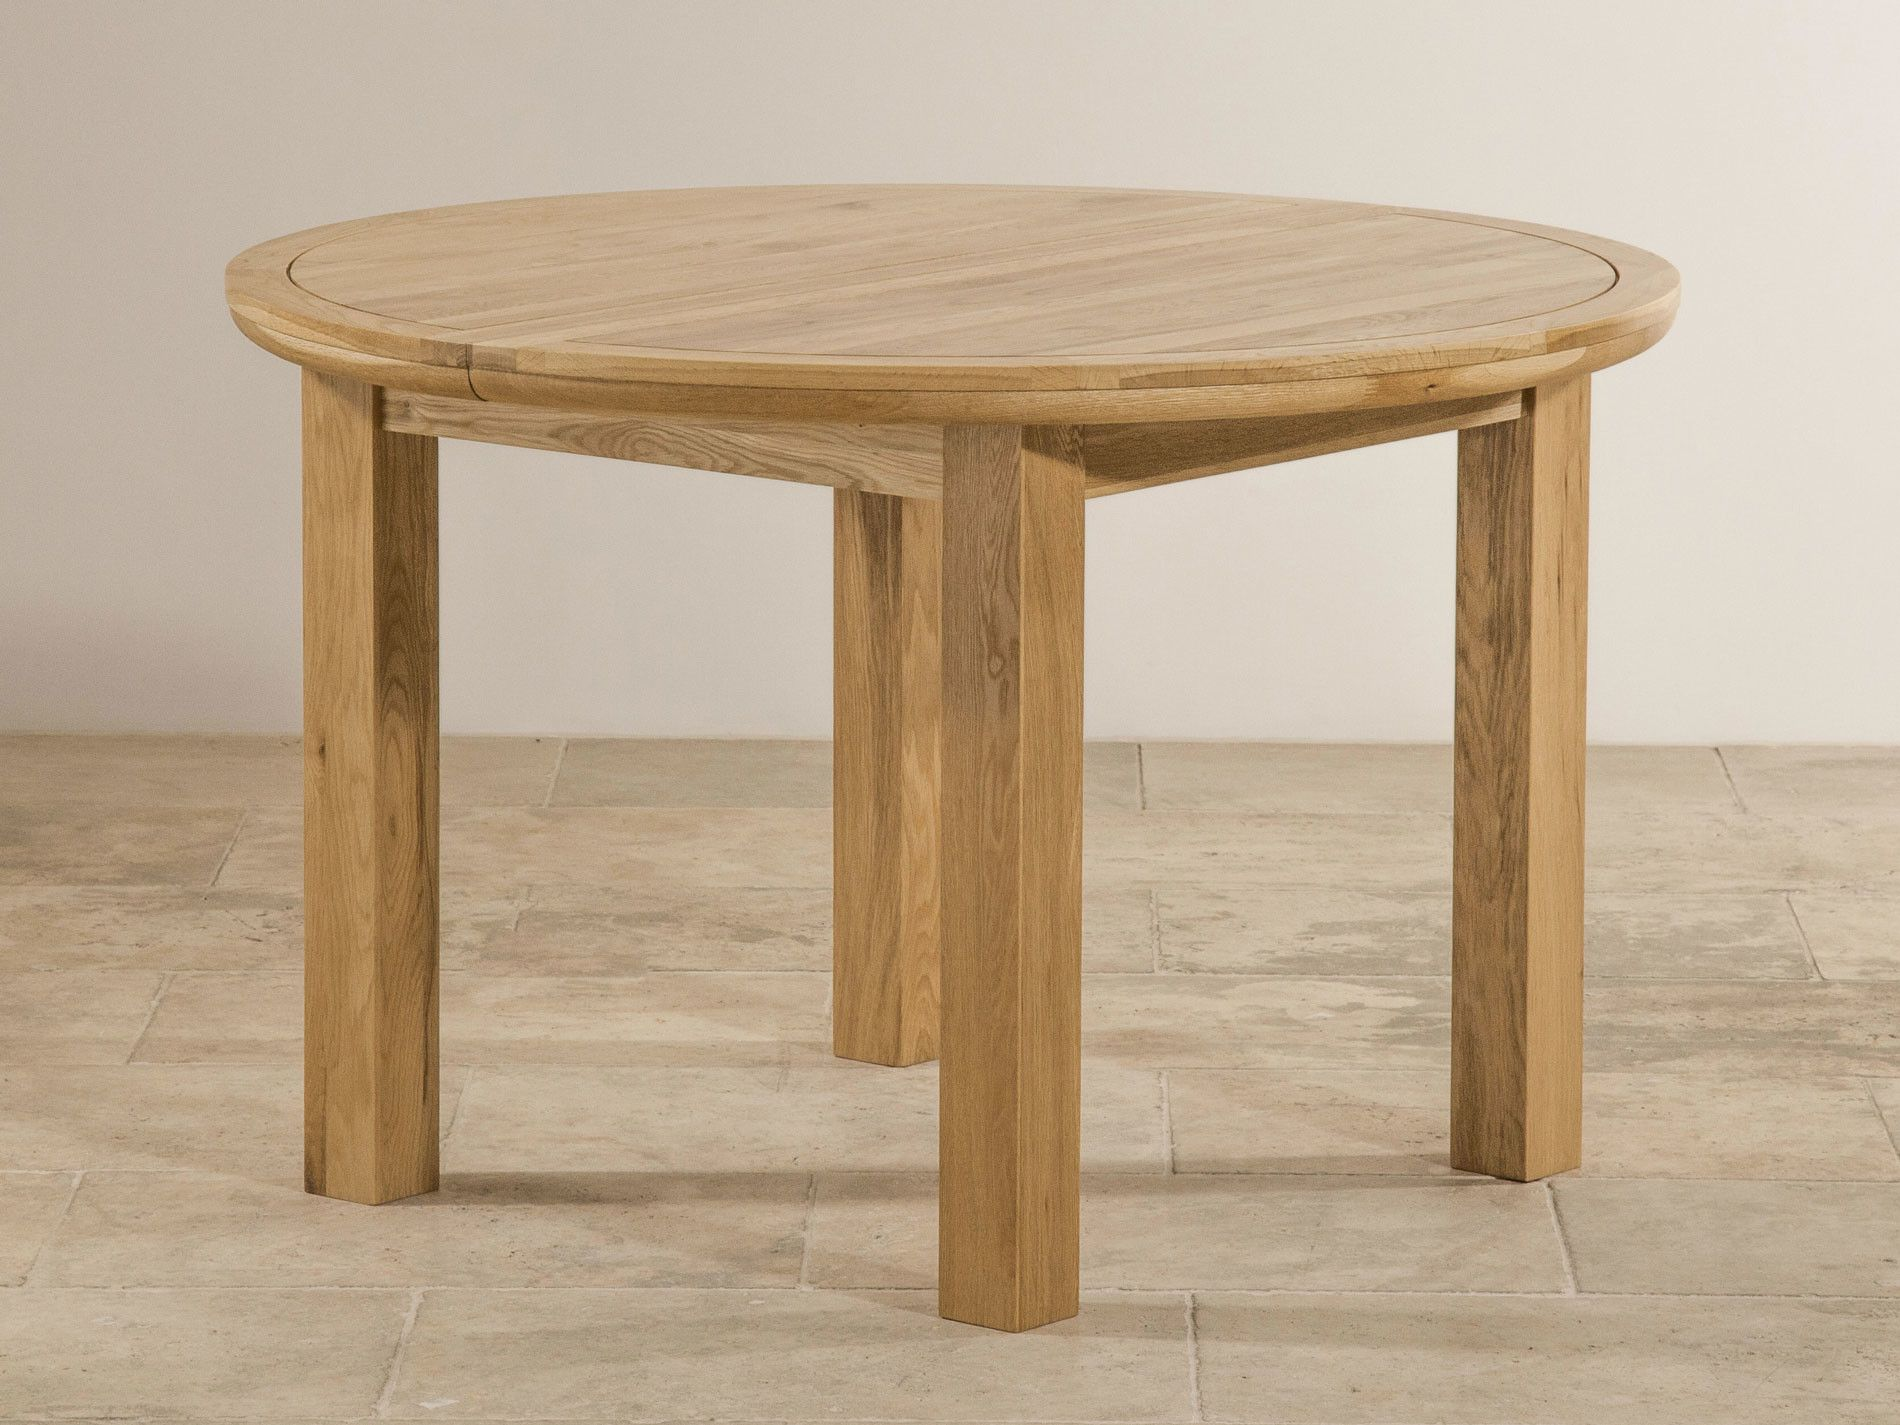 Knightsbridge Natural Solid Oak 4ft Round Extending Dining Table